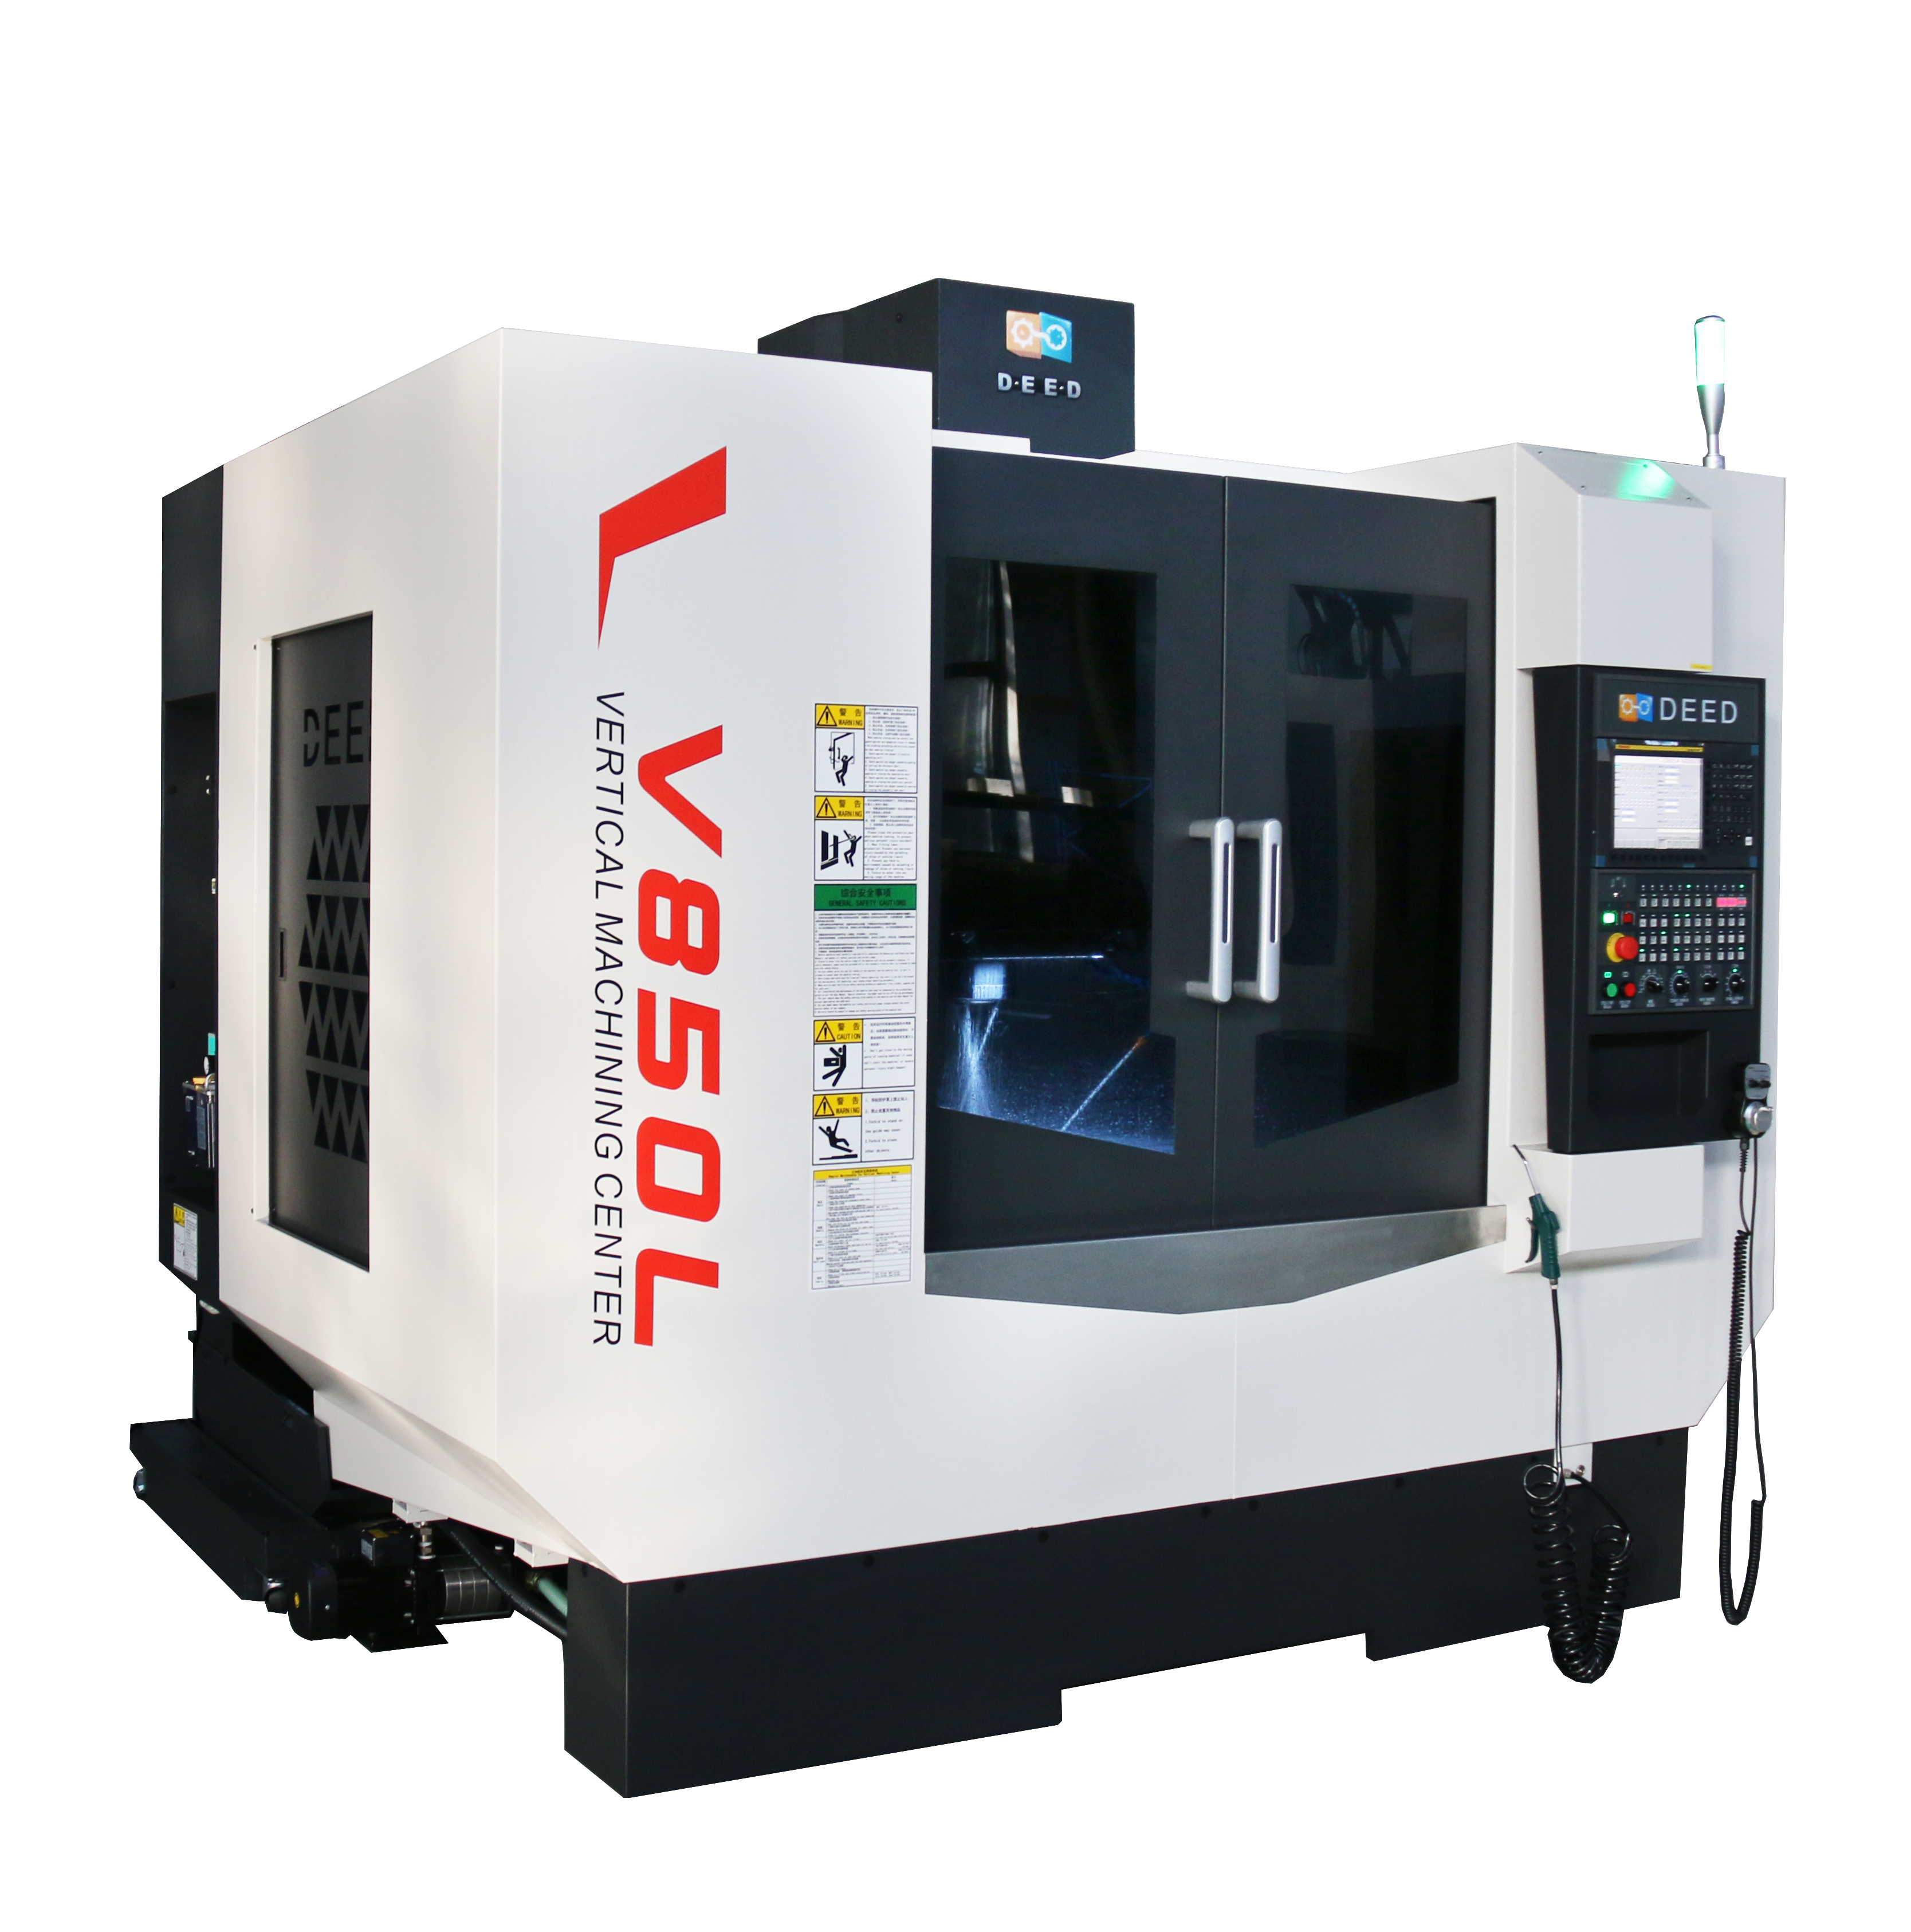 High Precision Metal CNC Milling Machine VMC850 Vertical Machining Center price Manufacturers, High Precision Metal CNC Milling Machine VMC850 Vertical Machining Center price Factory, Supply High Precision Metal CNC Milling Machine VMC850 Vertical Machining Center price